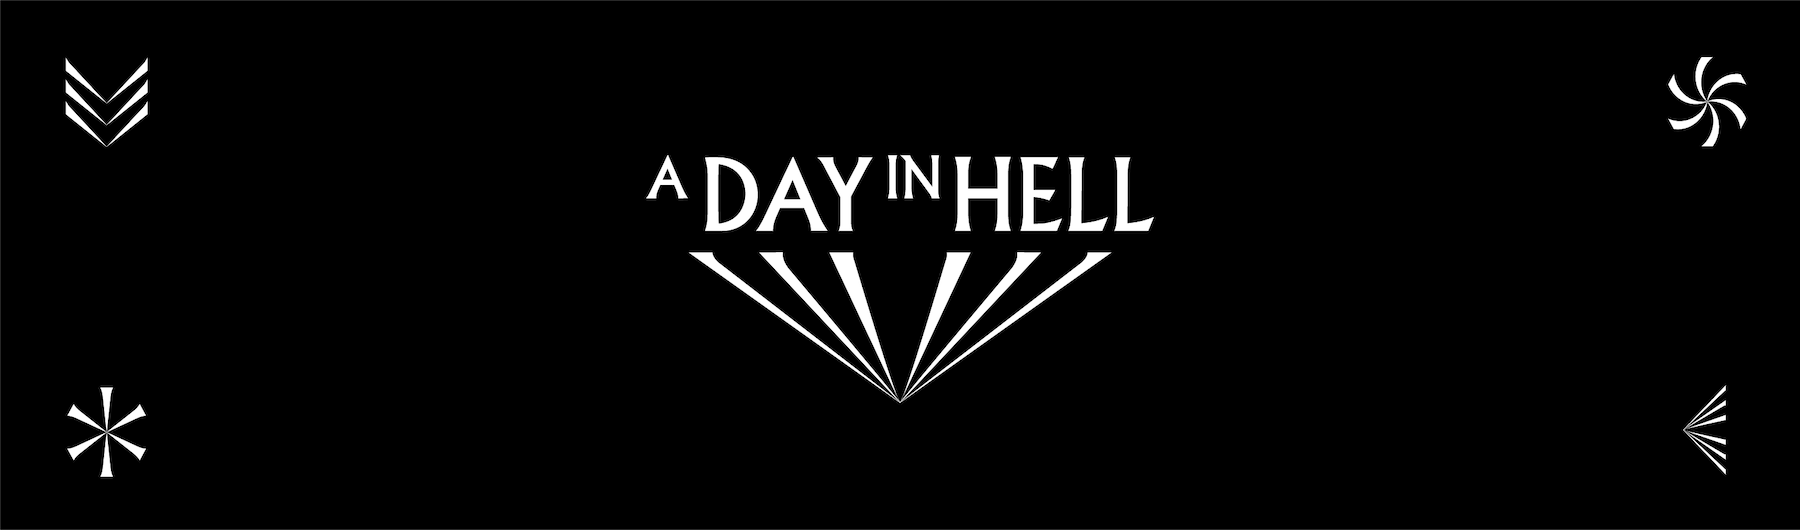 A Day in Hell Scandinavia